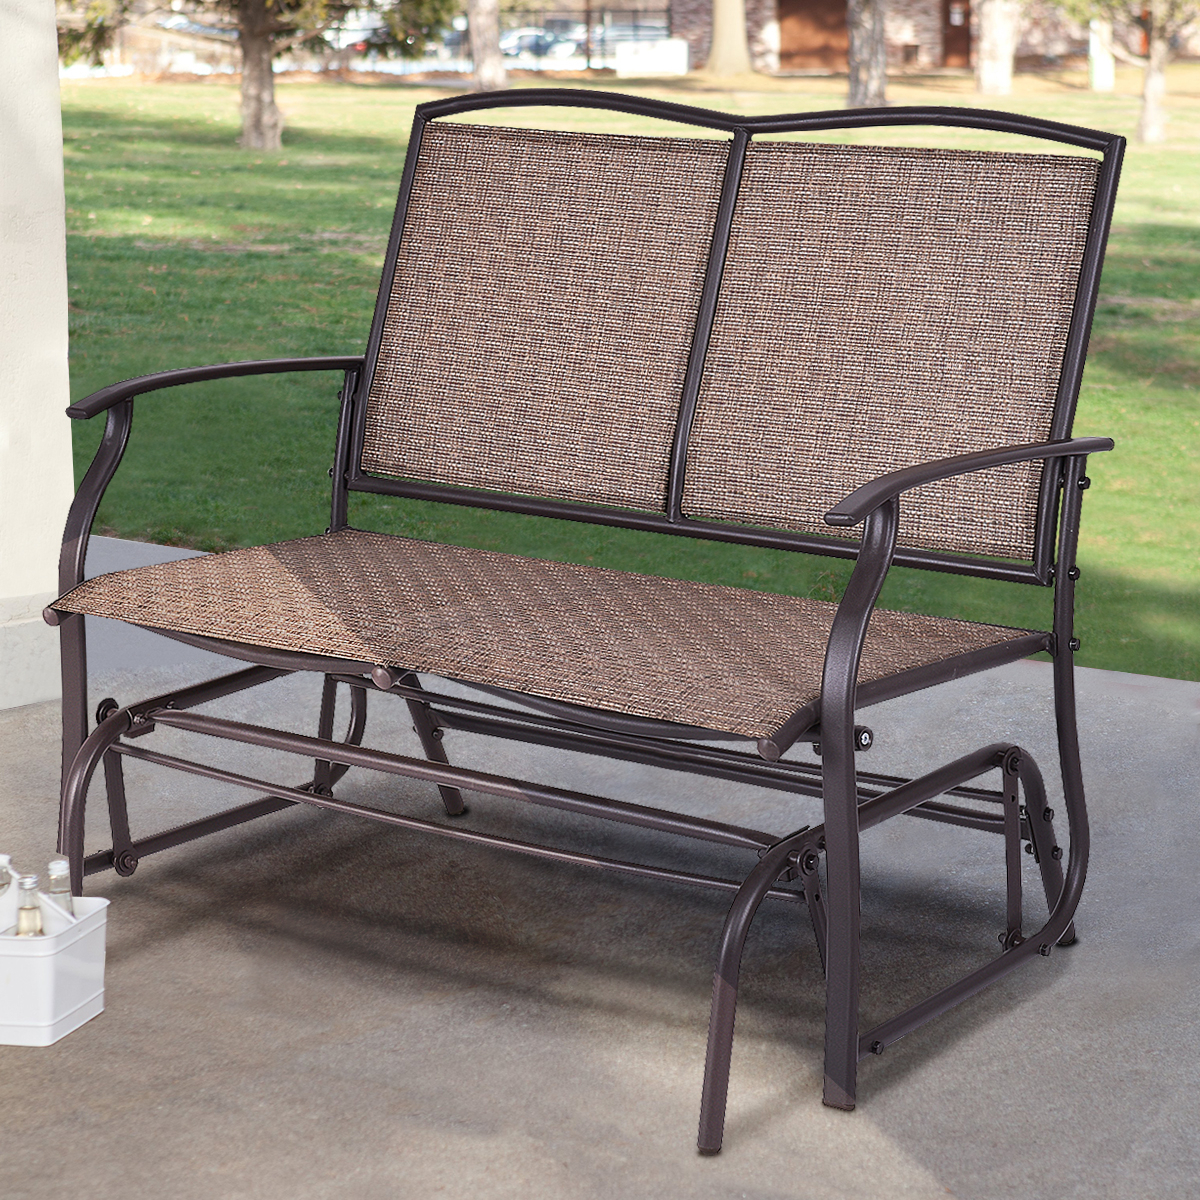 Costway Patio Glider Rocking Bench Double 2 Person Chair Loveseat Armchair Backyard – Walmart With Most Recently Released 2 Person Antique Black Iron Outdoor Gliders (View 26 of 30)